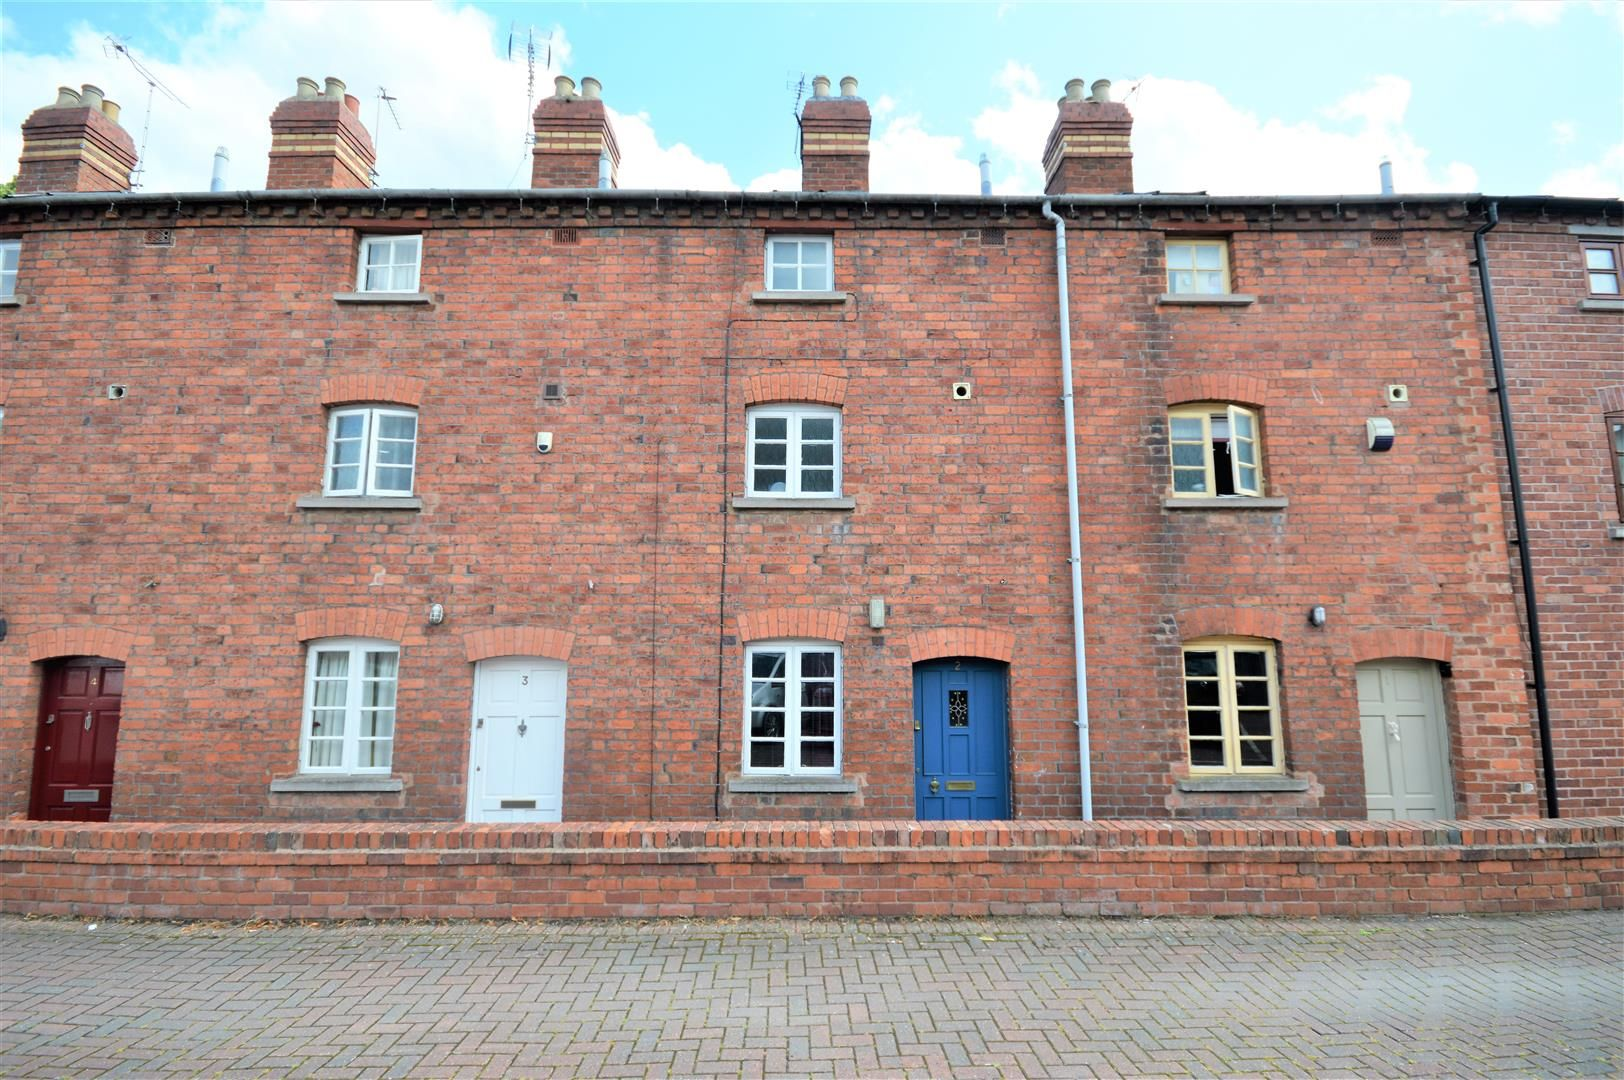 3 bed town-house for sale in Hereford, HR1